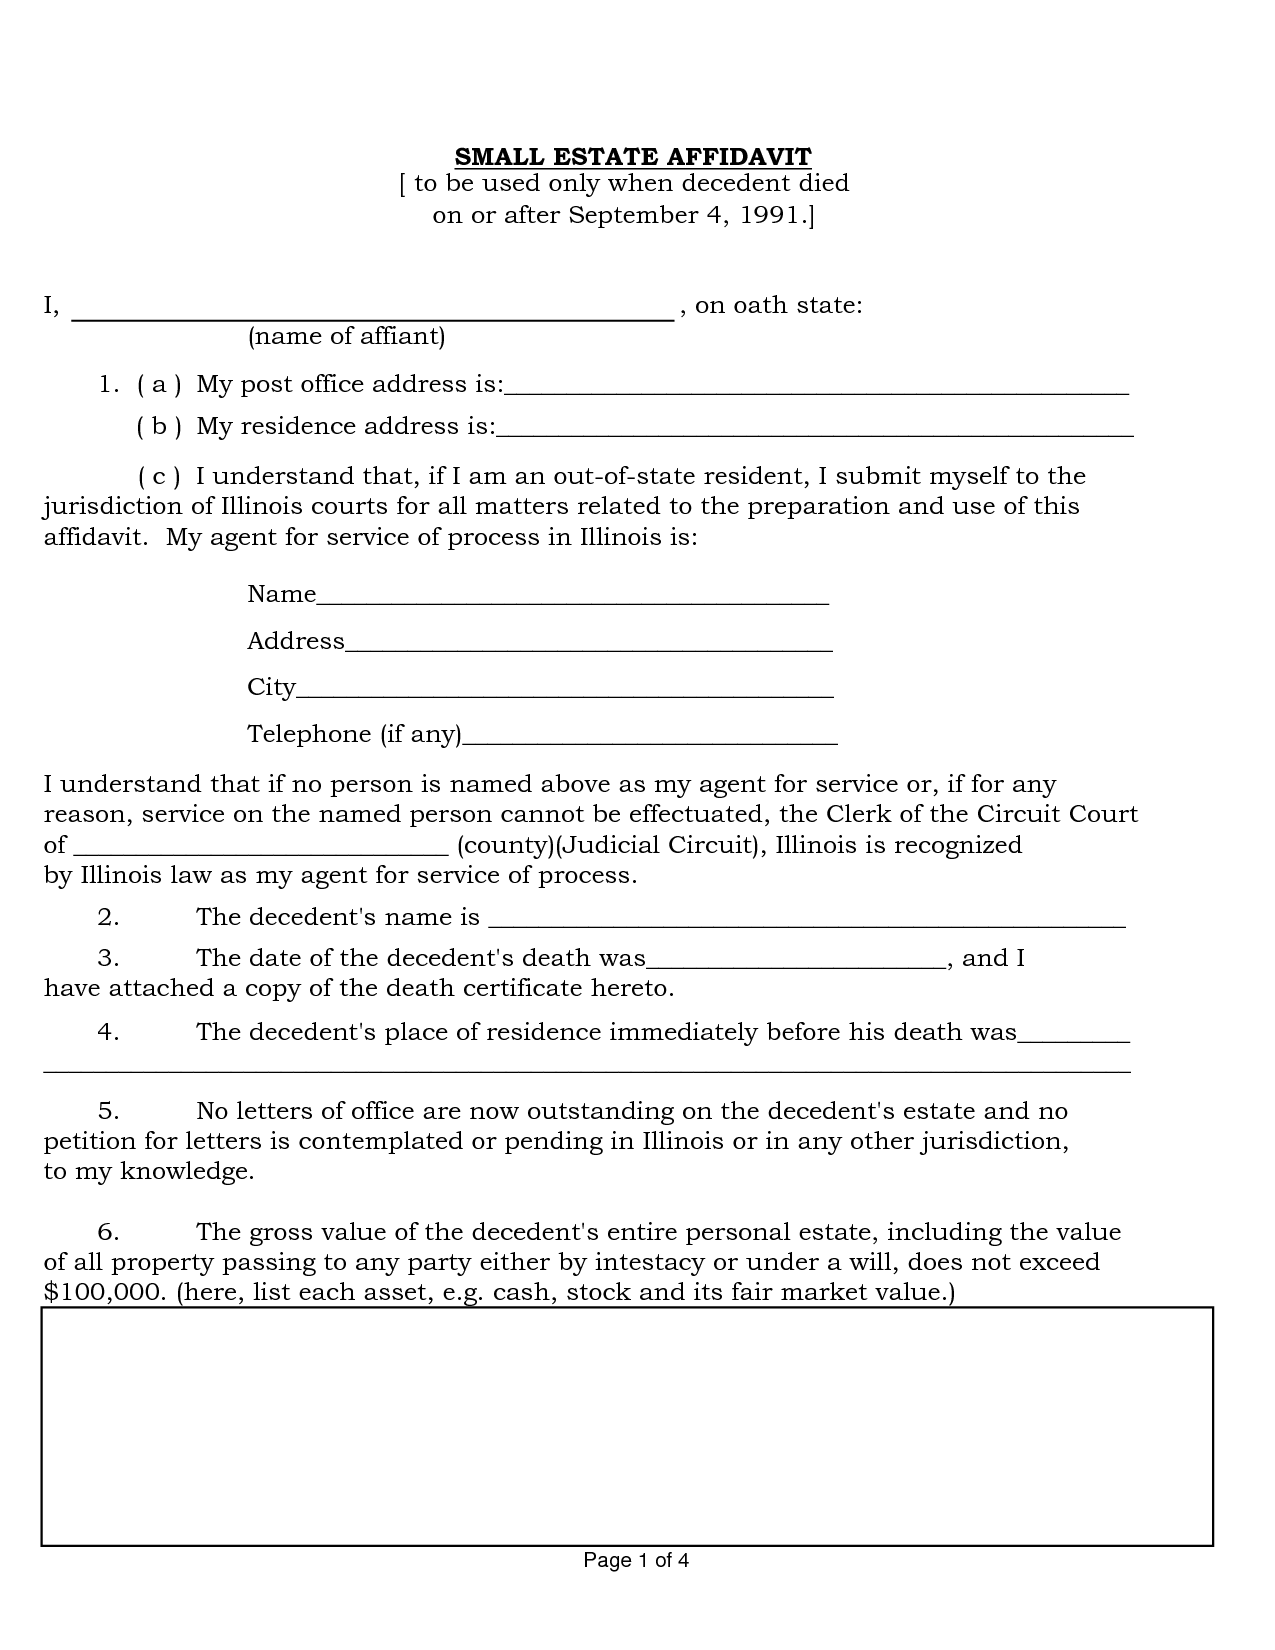 Il Probate Small Estate Affidavit Form By Zja10551   Small Affidavit  General Affidavit Template